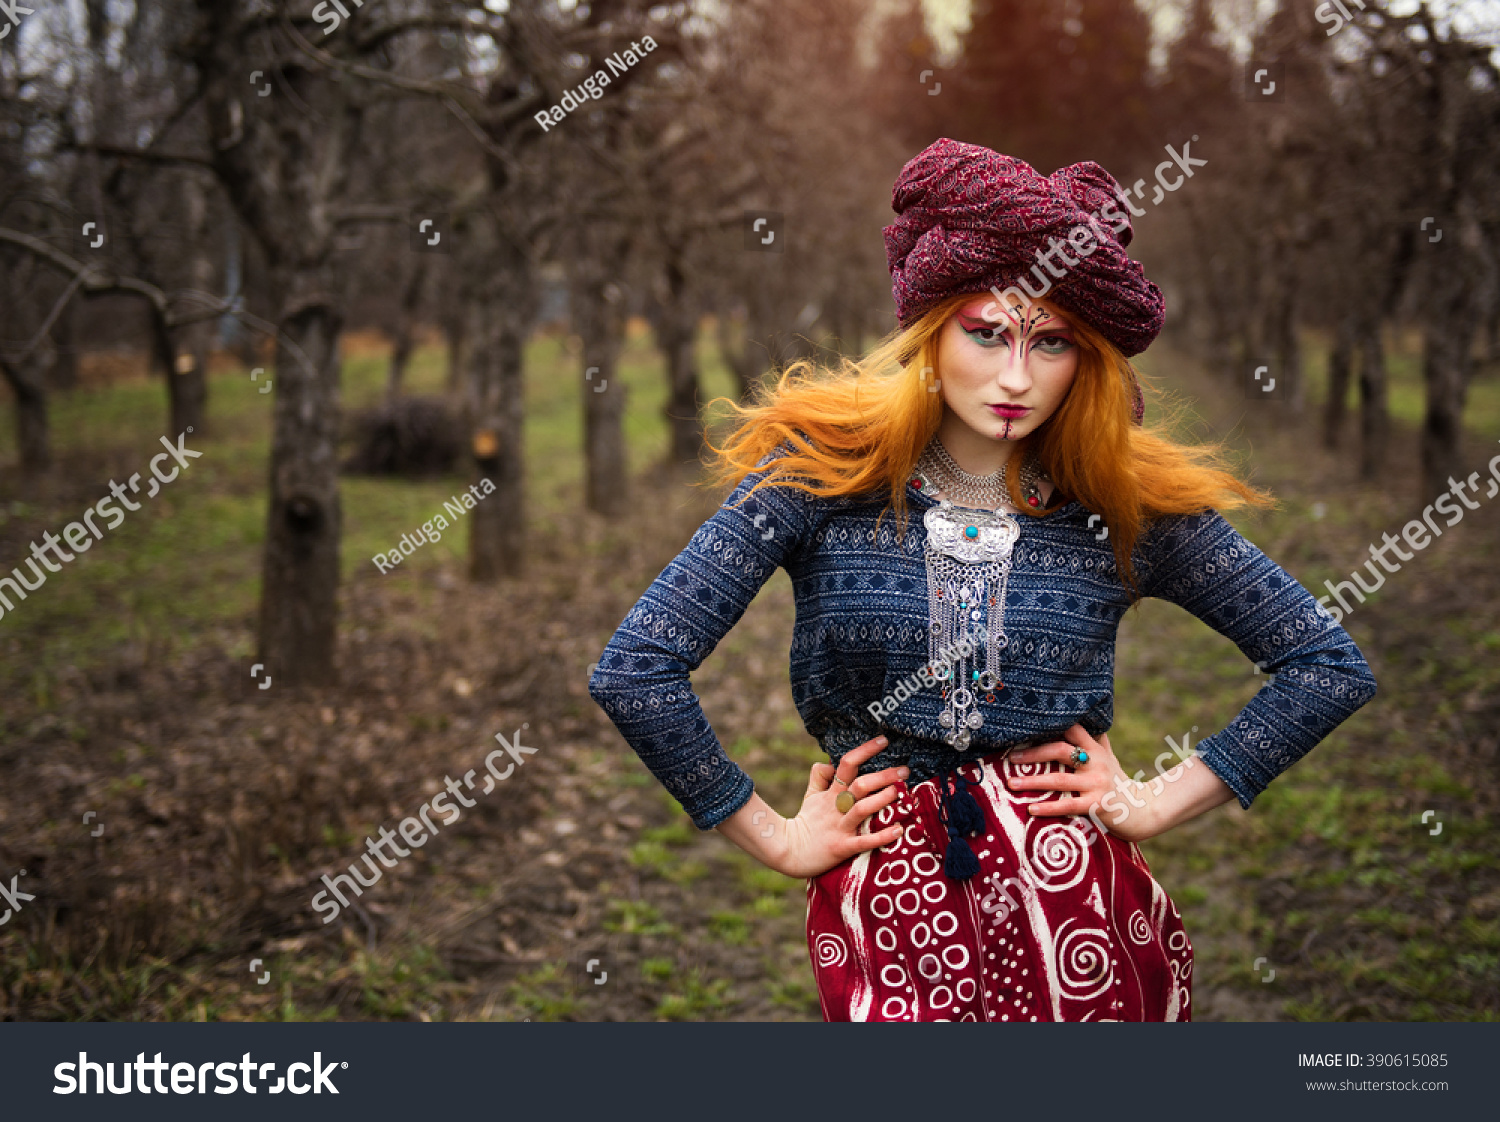 Bright Girl Red Hair Turban Poses Stock Photo (Edit Now) 390615085 ...